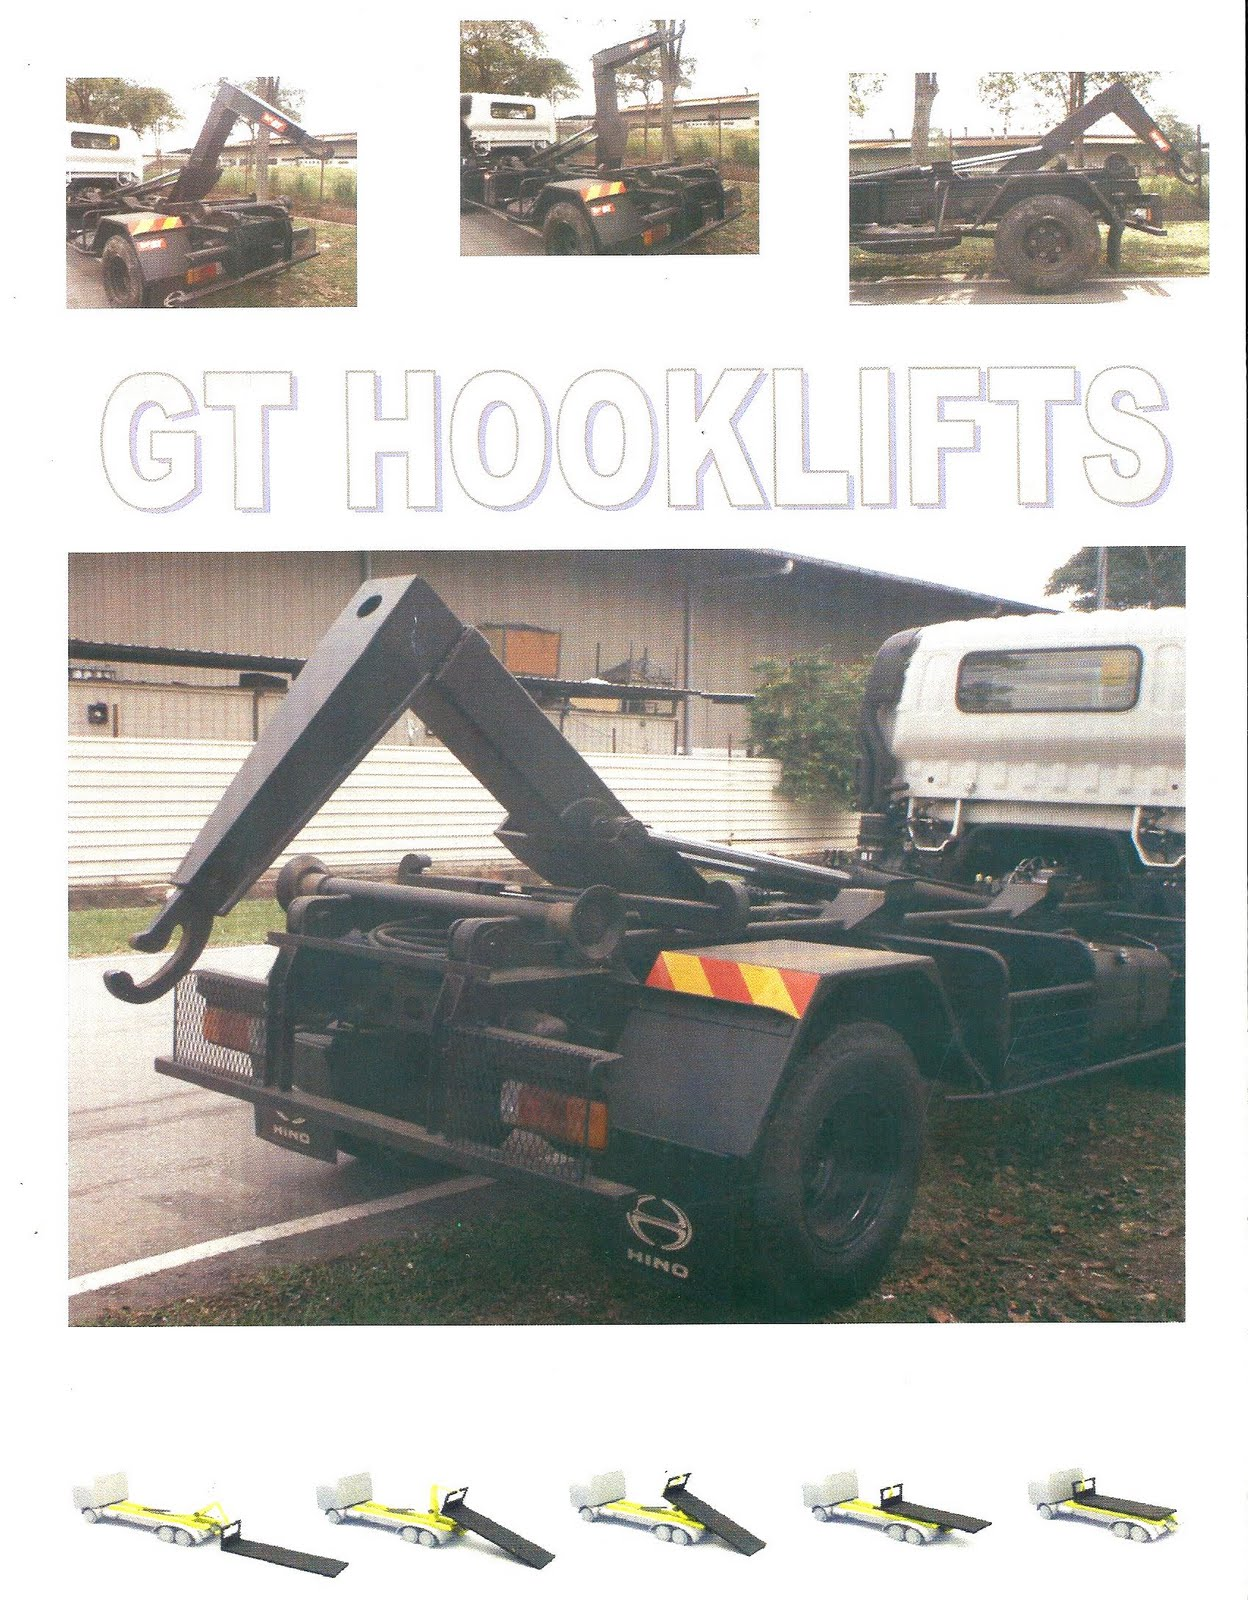 gt hook lift pamplet